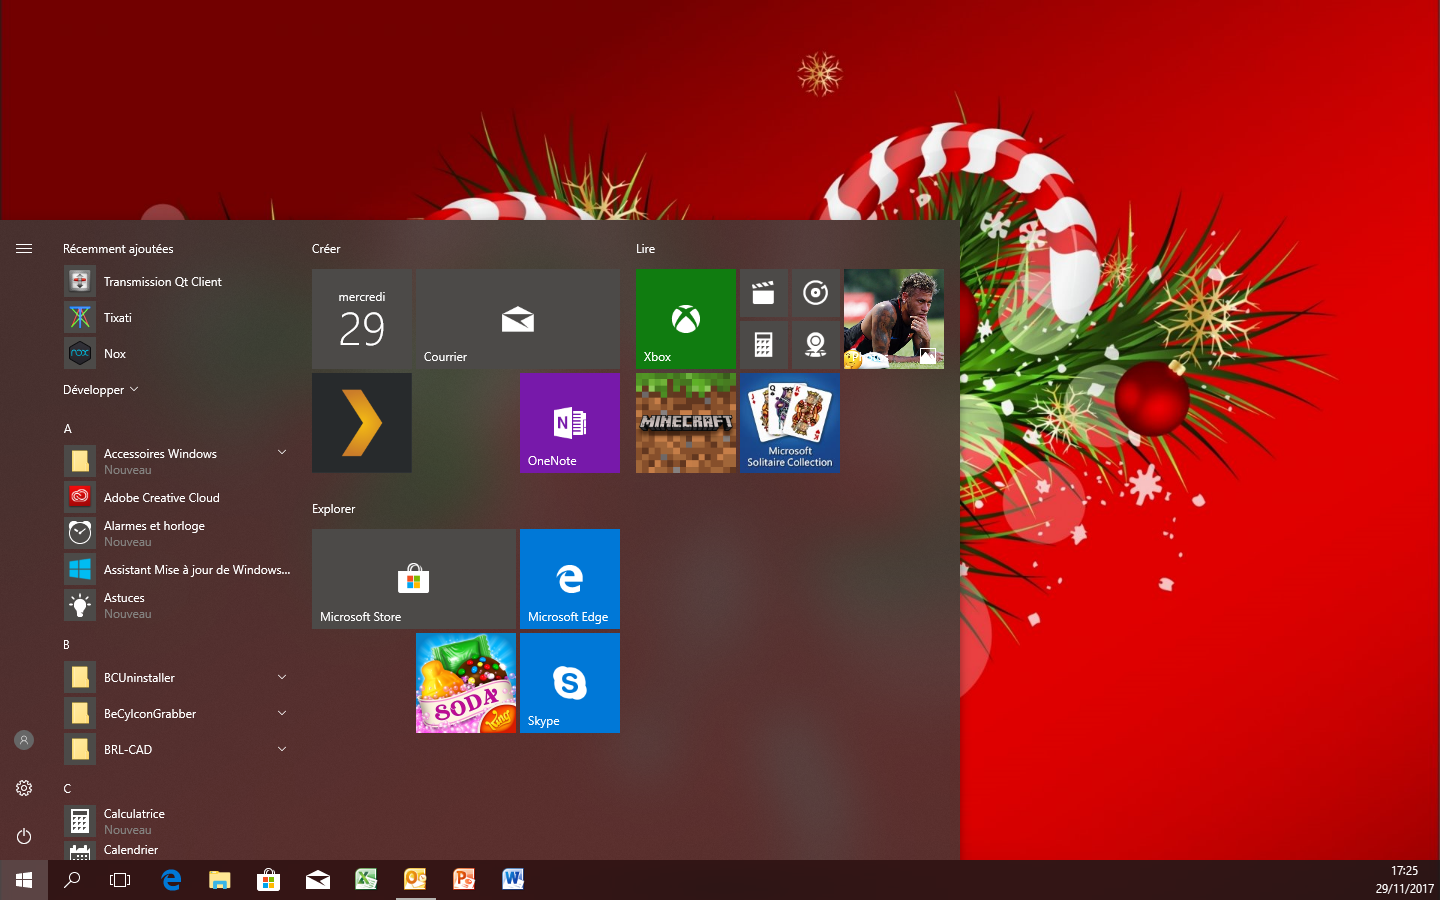 Capture d'écran Thème Windows 10 Sapins de Noël